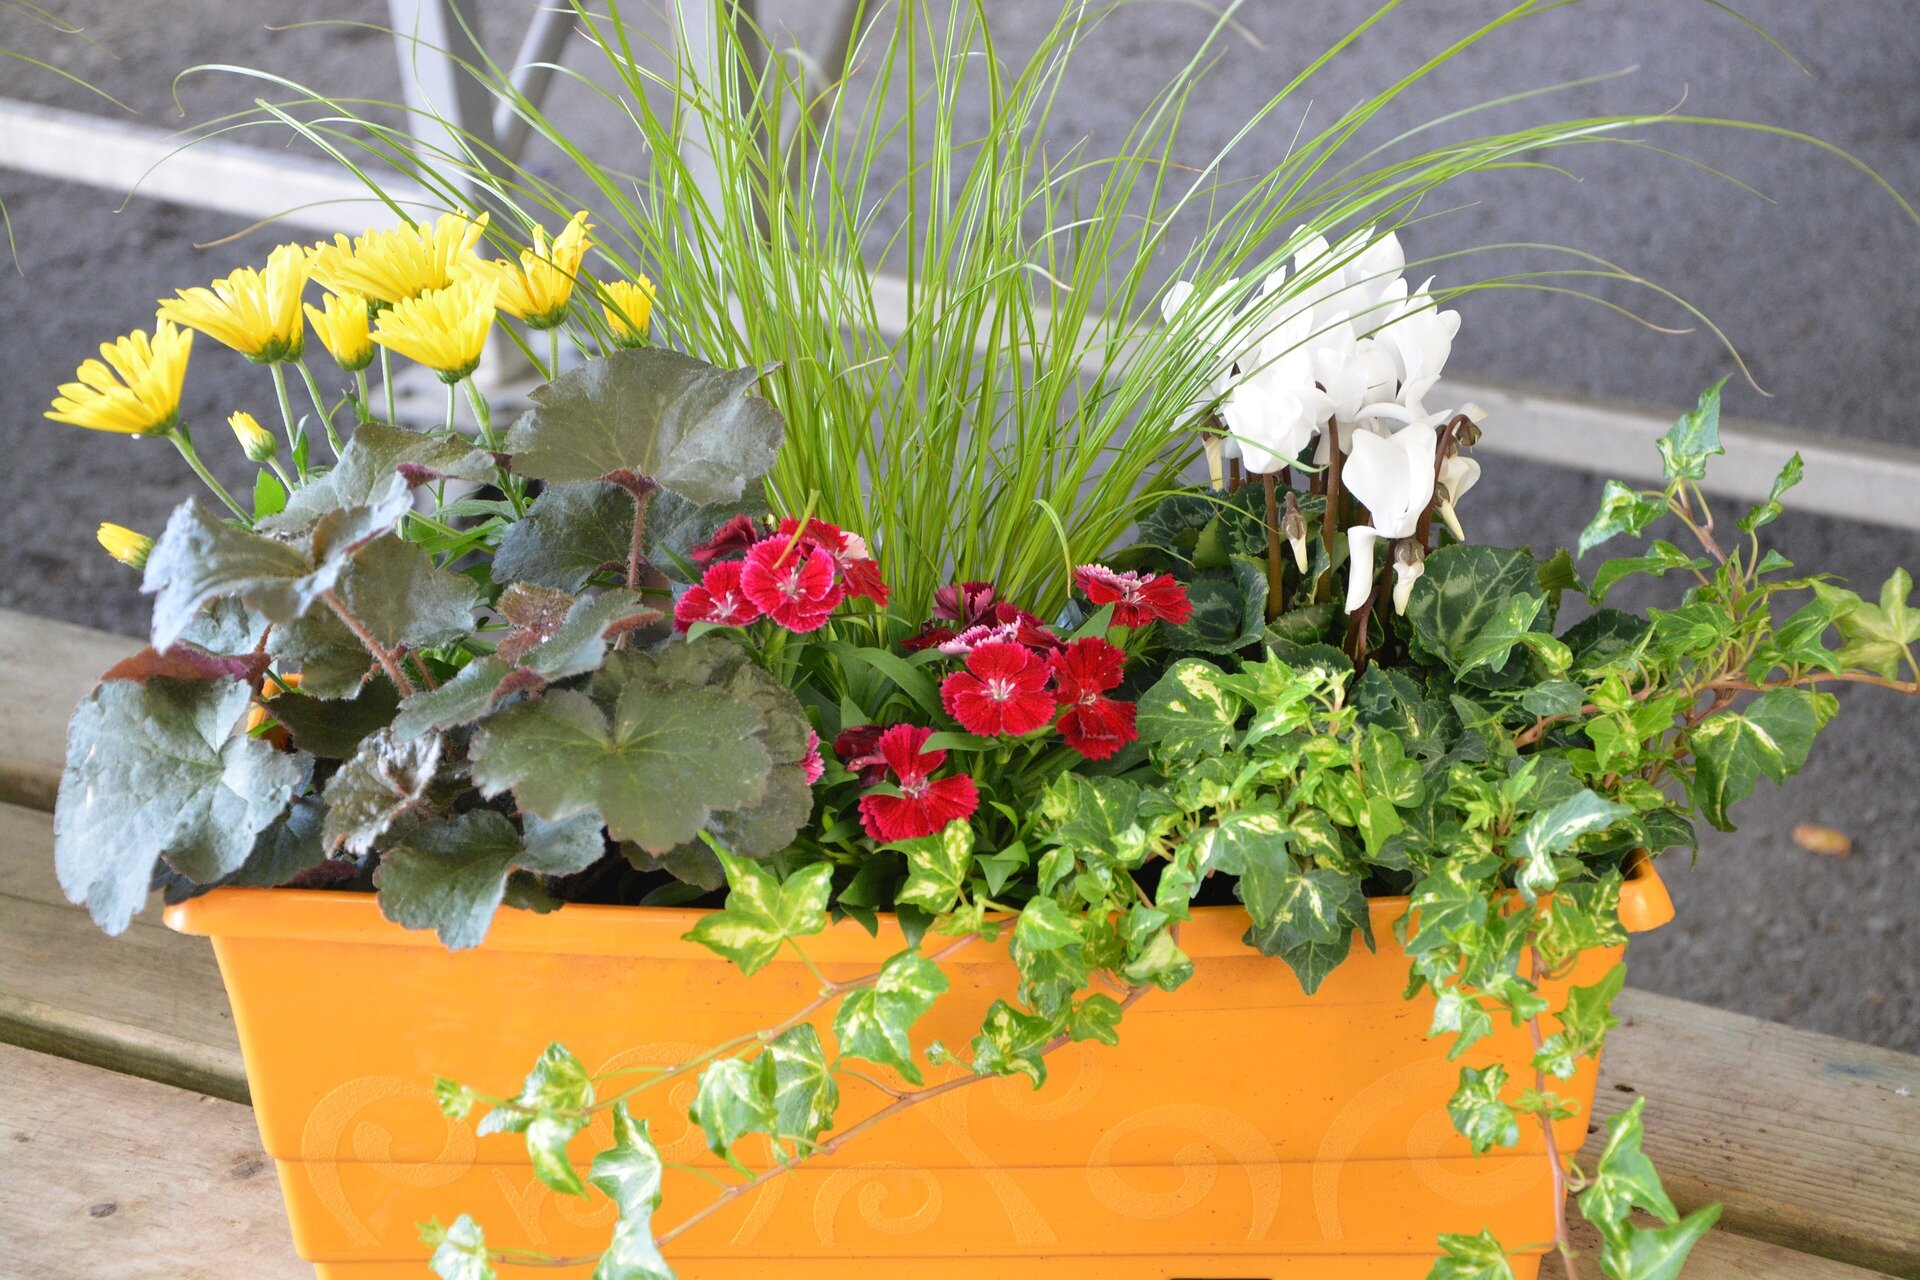 potted flowers-2688083_1920.jpg